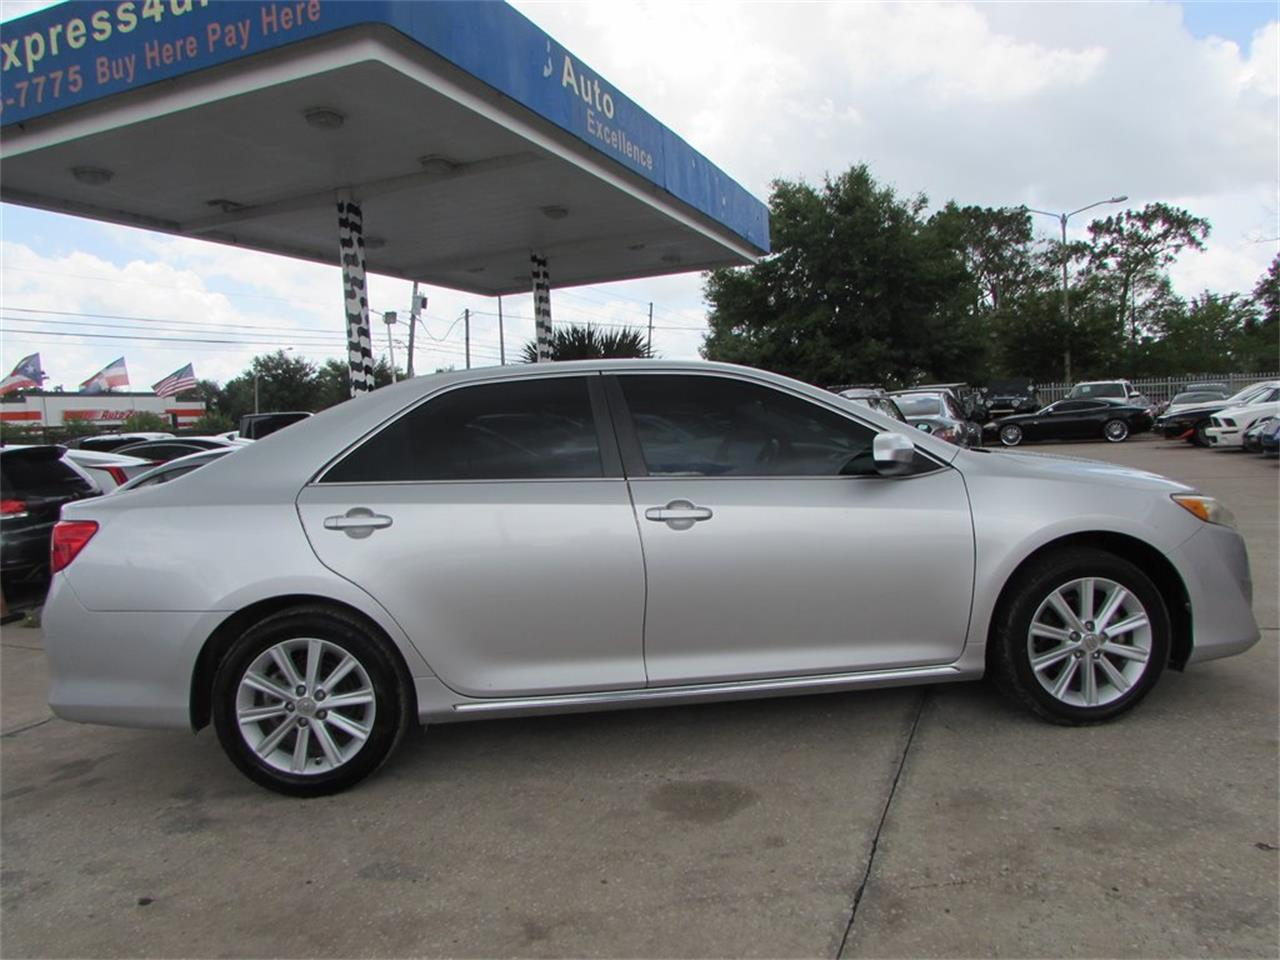 Large Picture of 2012 Camry located in Orlando Florida - $10,500.00 Offered by Auto Express - QBF0